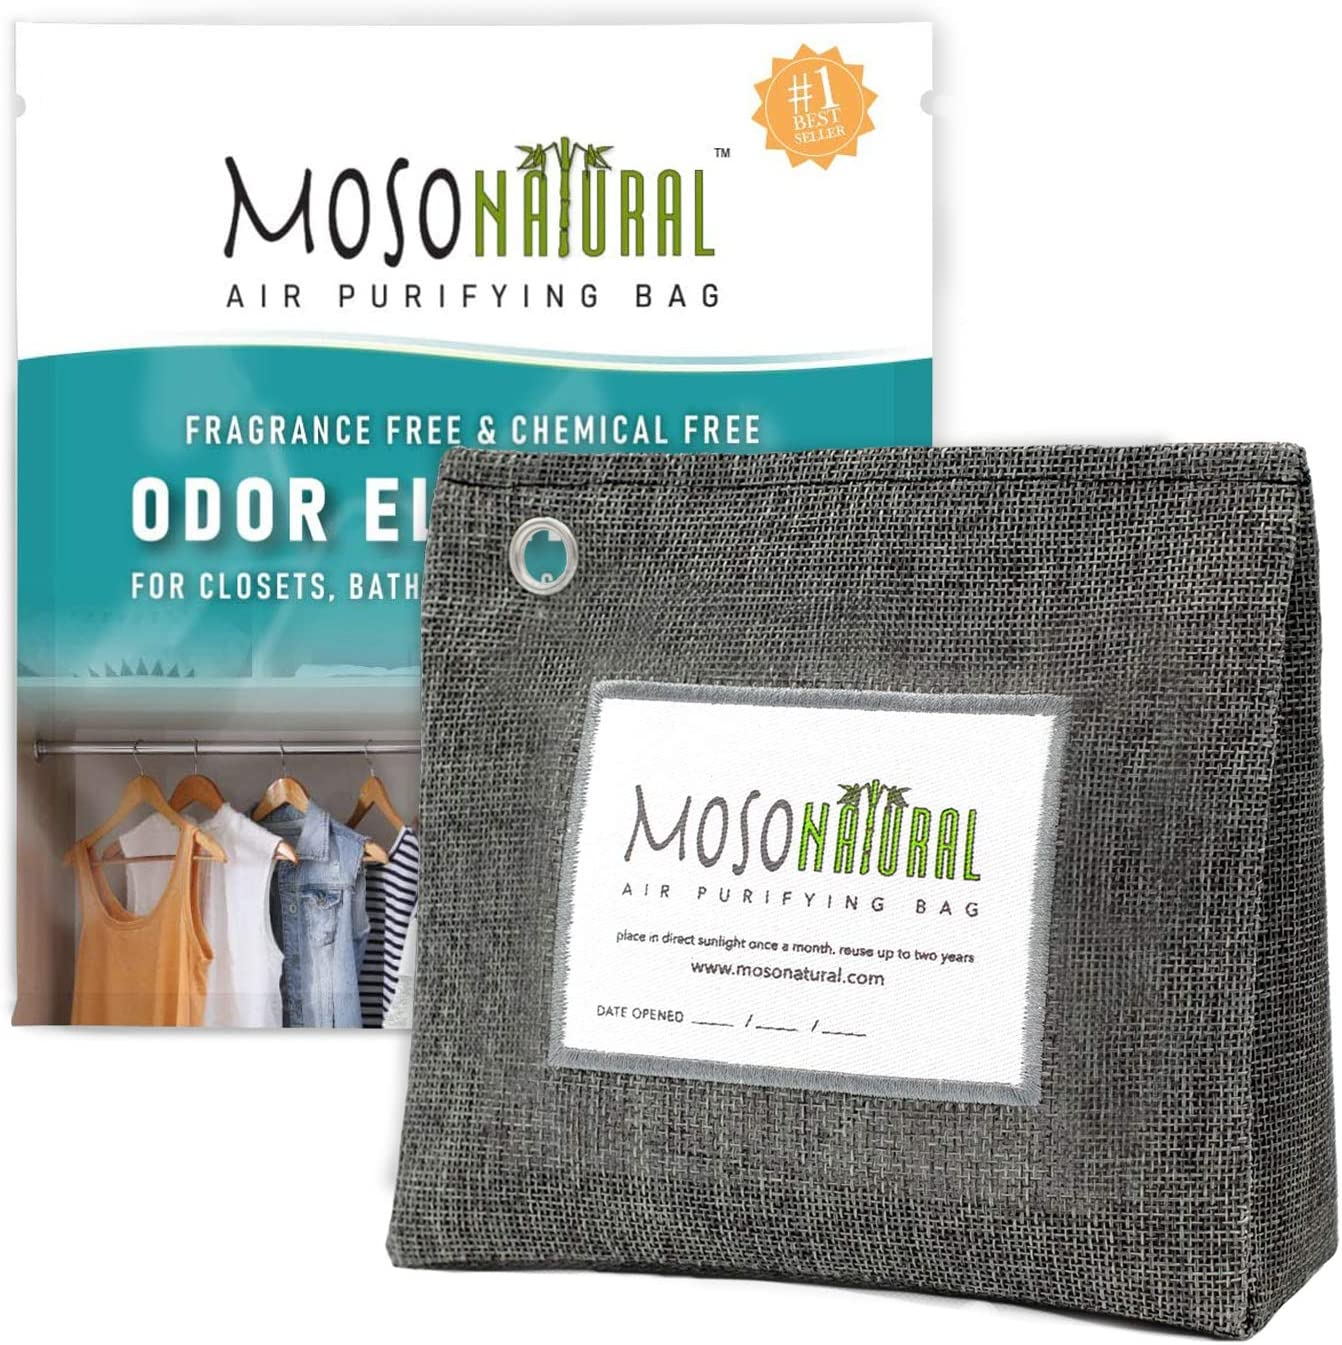 MOSO NATURAL: The Original Air Purifying Bag. 300g Stand Up Design. For Closets, Bathrooms, Pet Areas. An Unscented, Chemical-Free Odor Eliminator (Charcoal)